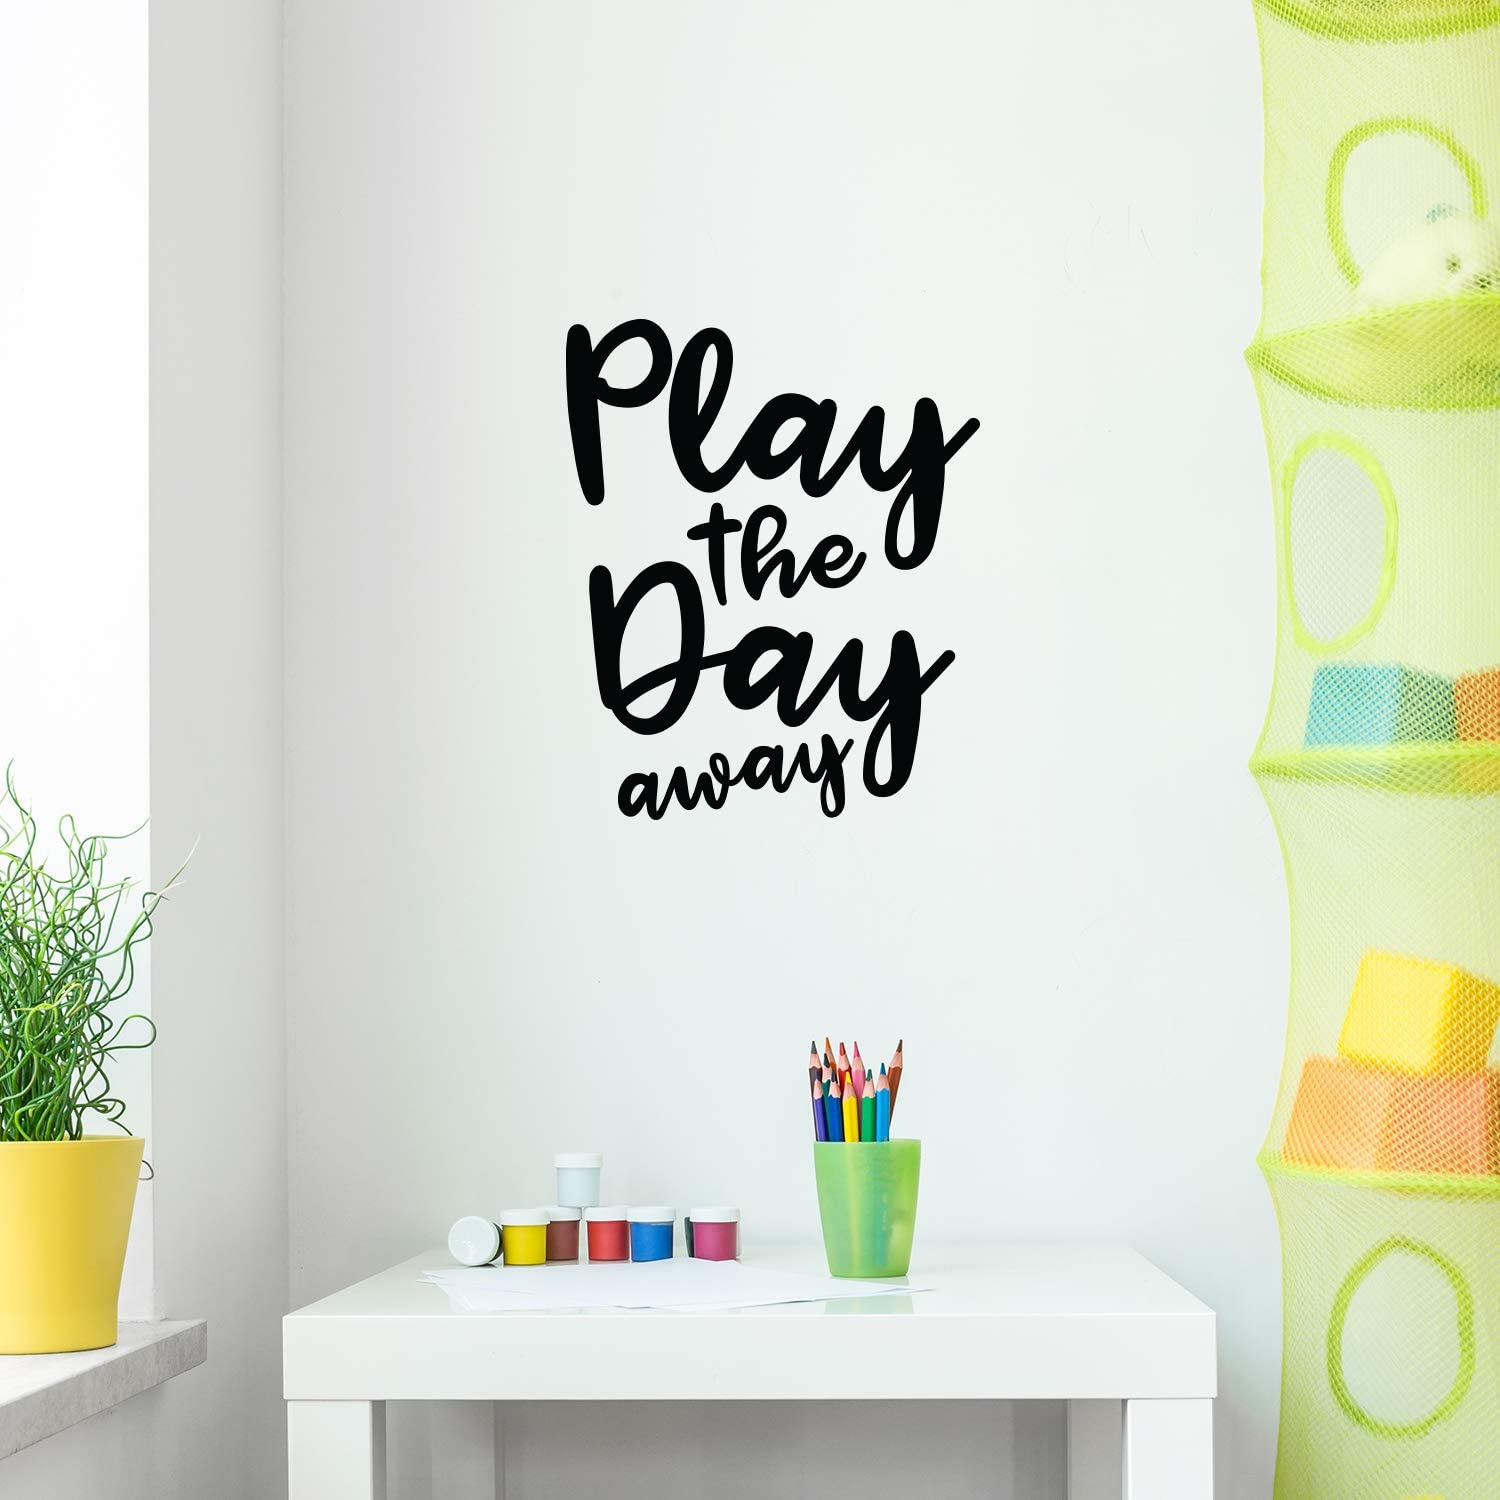 Vinyl Wall Art Decal - Play The Day Away - 23